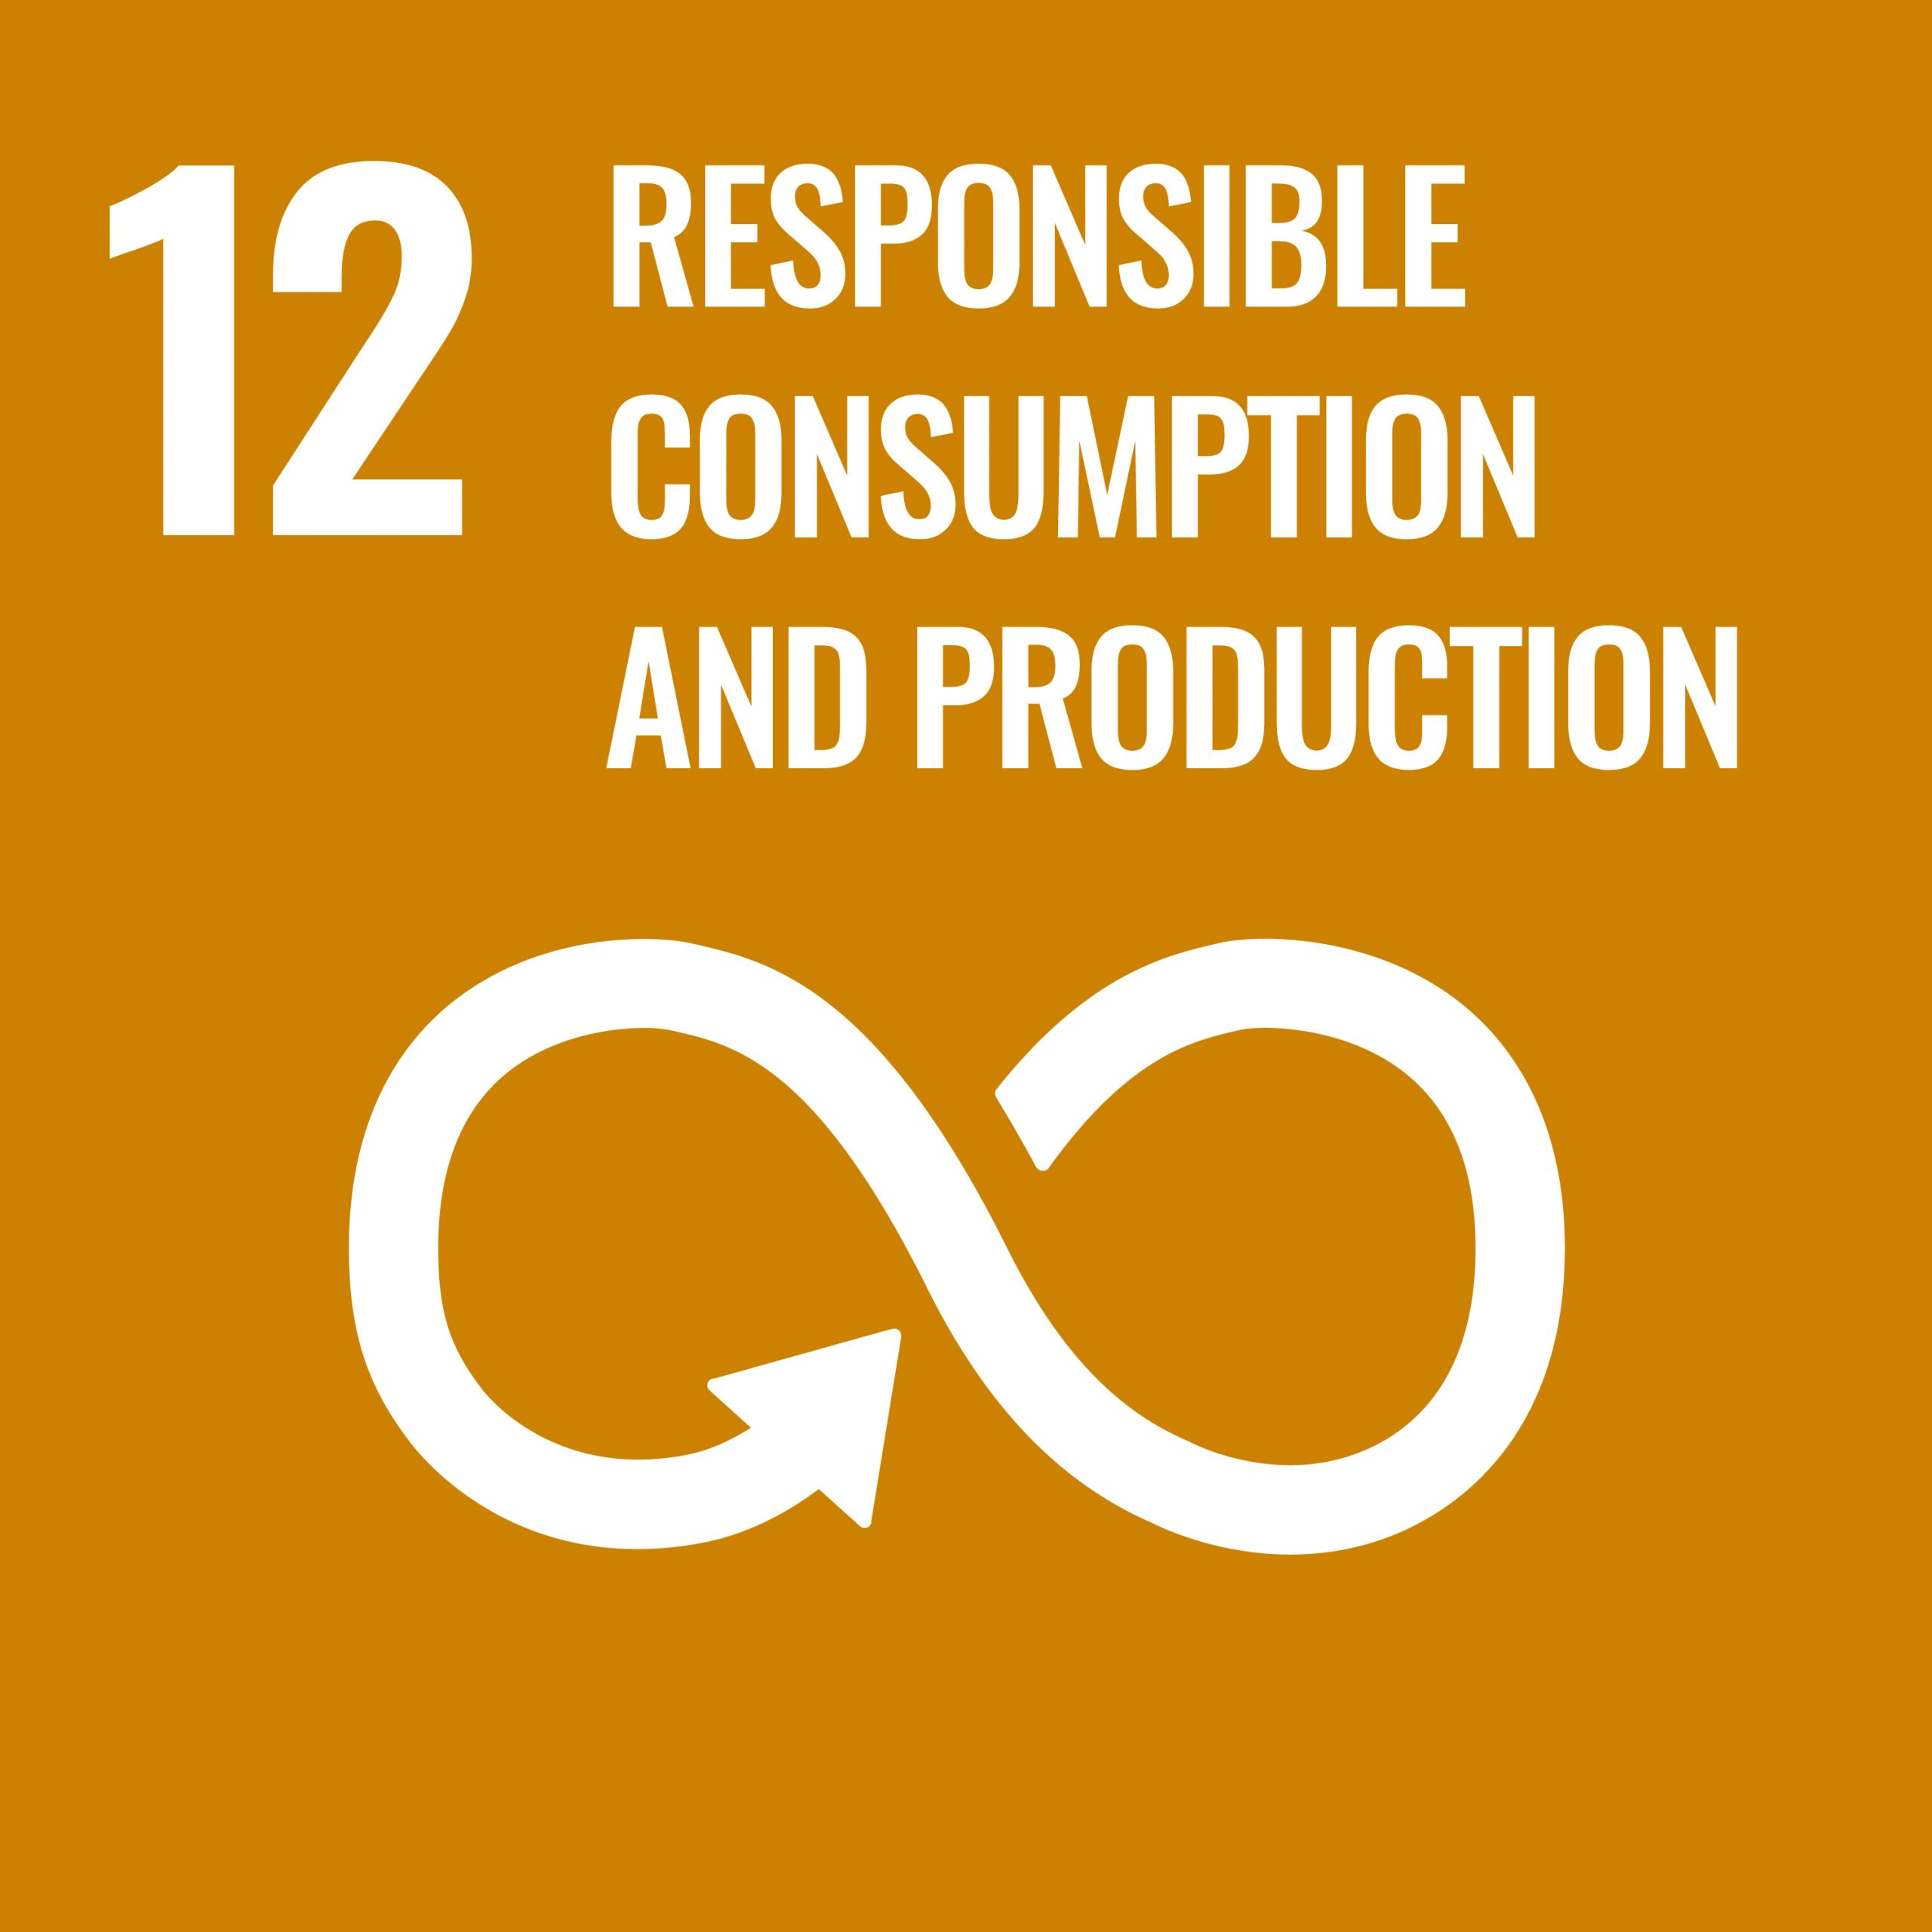 Rsponsible consumption and production - SDG 12